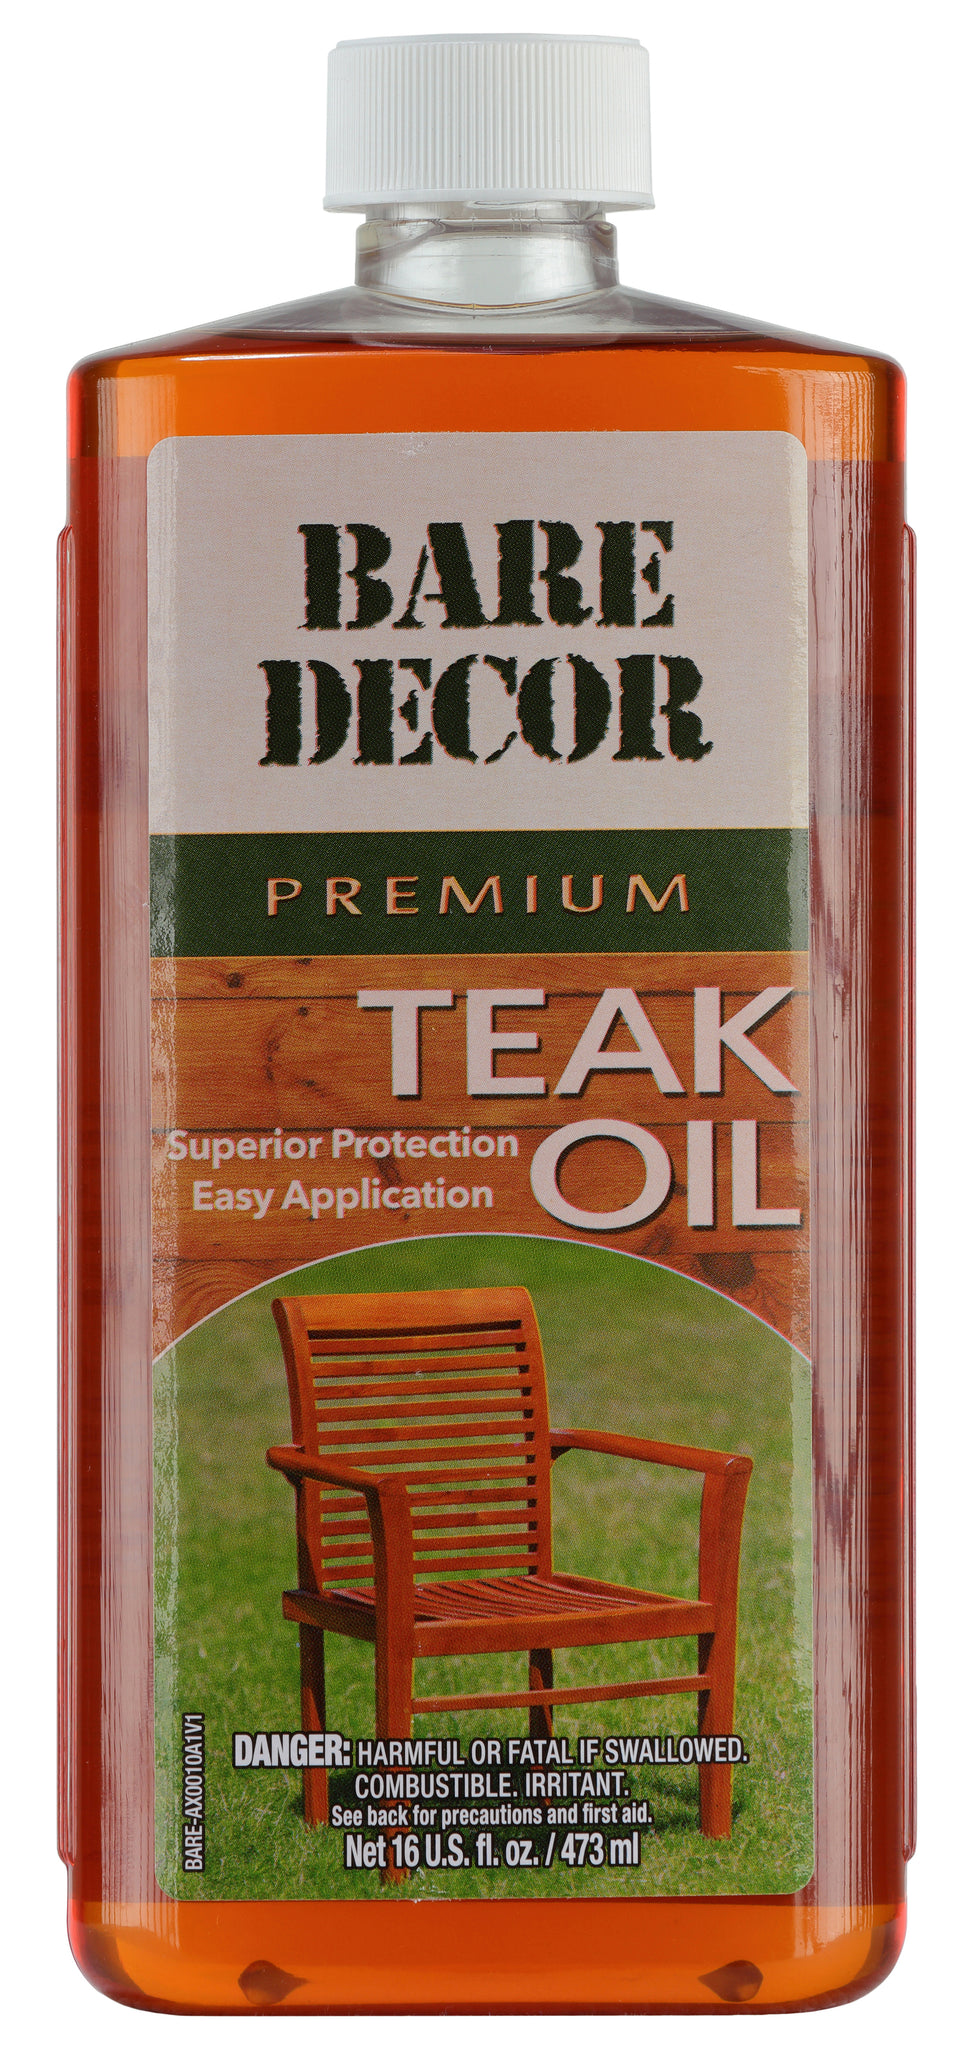 Bare Decor Premium Golden Teak Oil for Home and Marine Use, 16oz